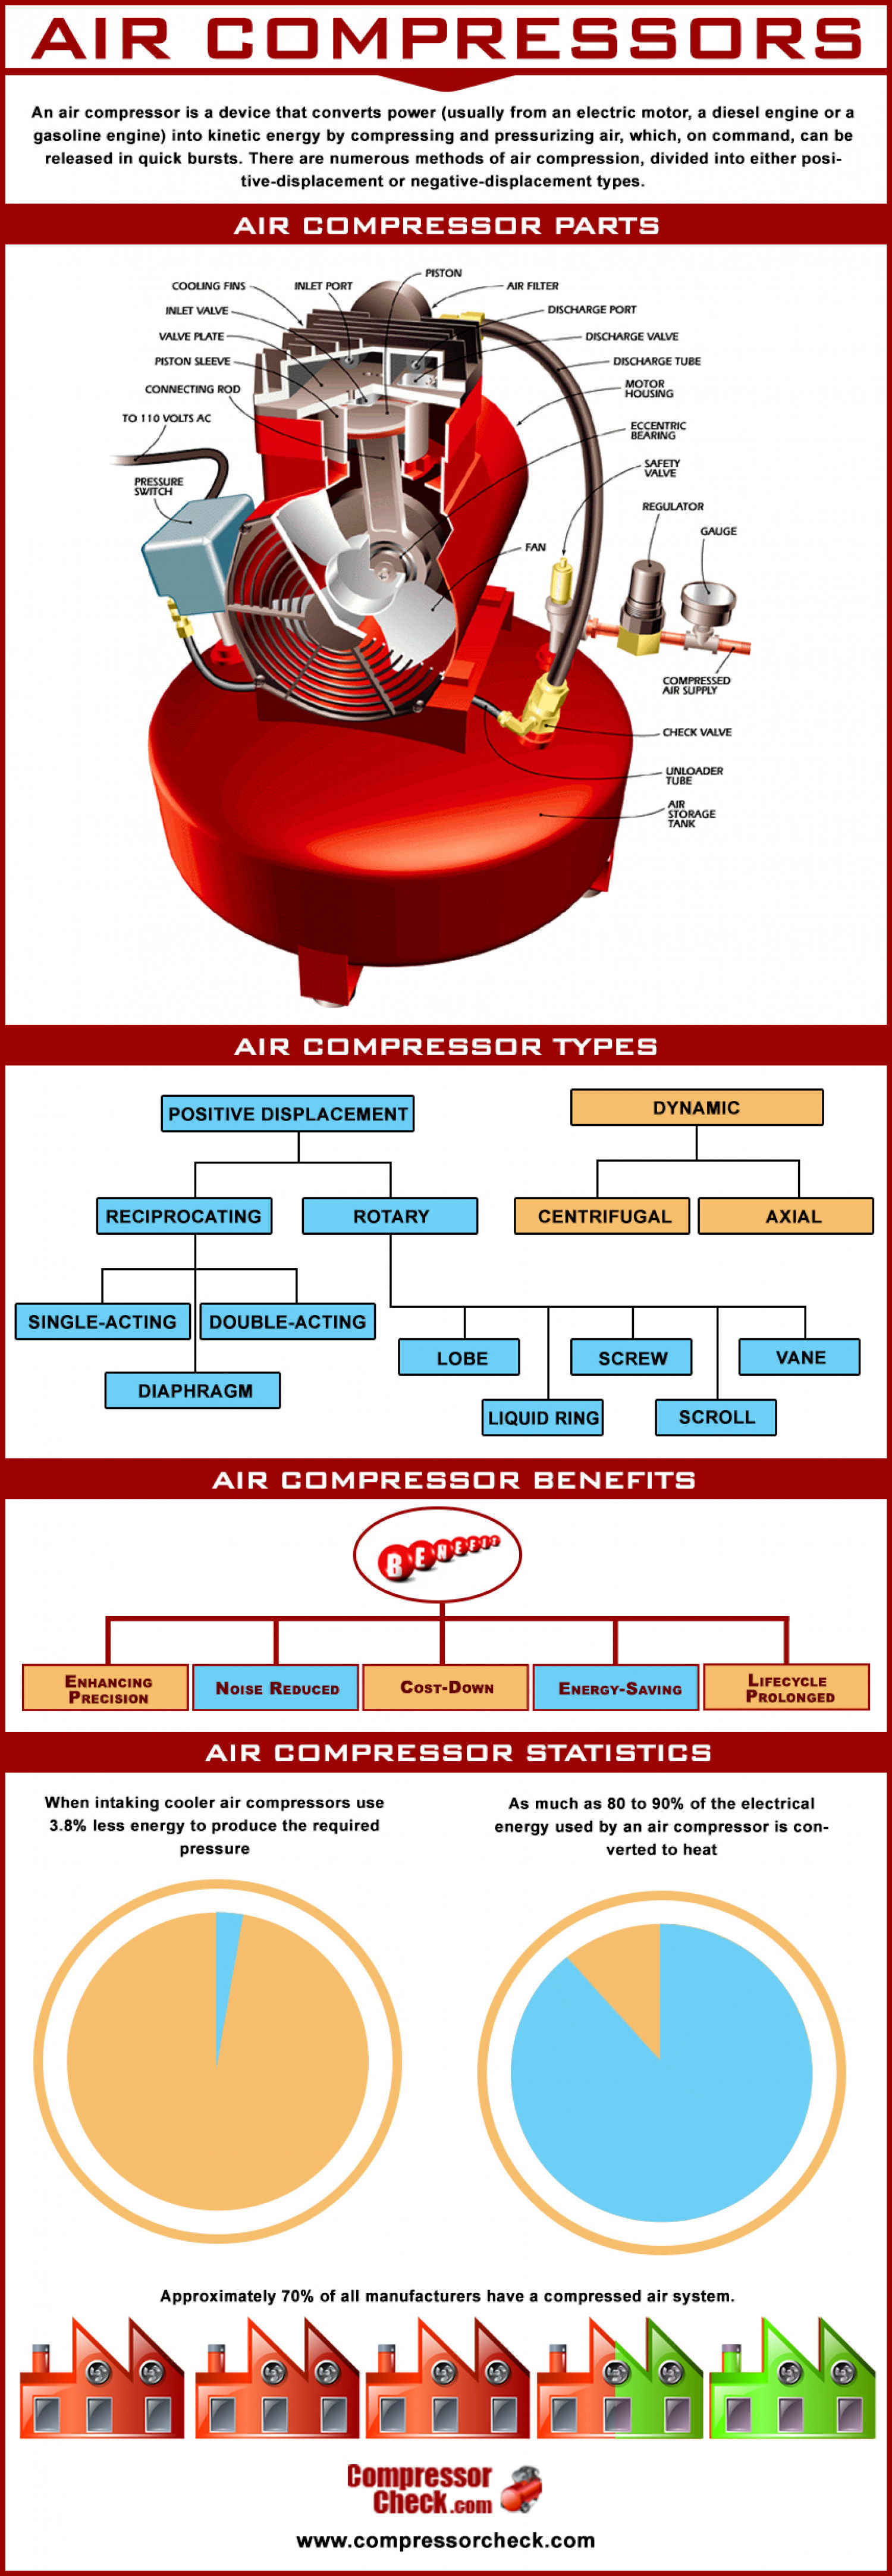 Air Compressor Benefits Infographic